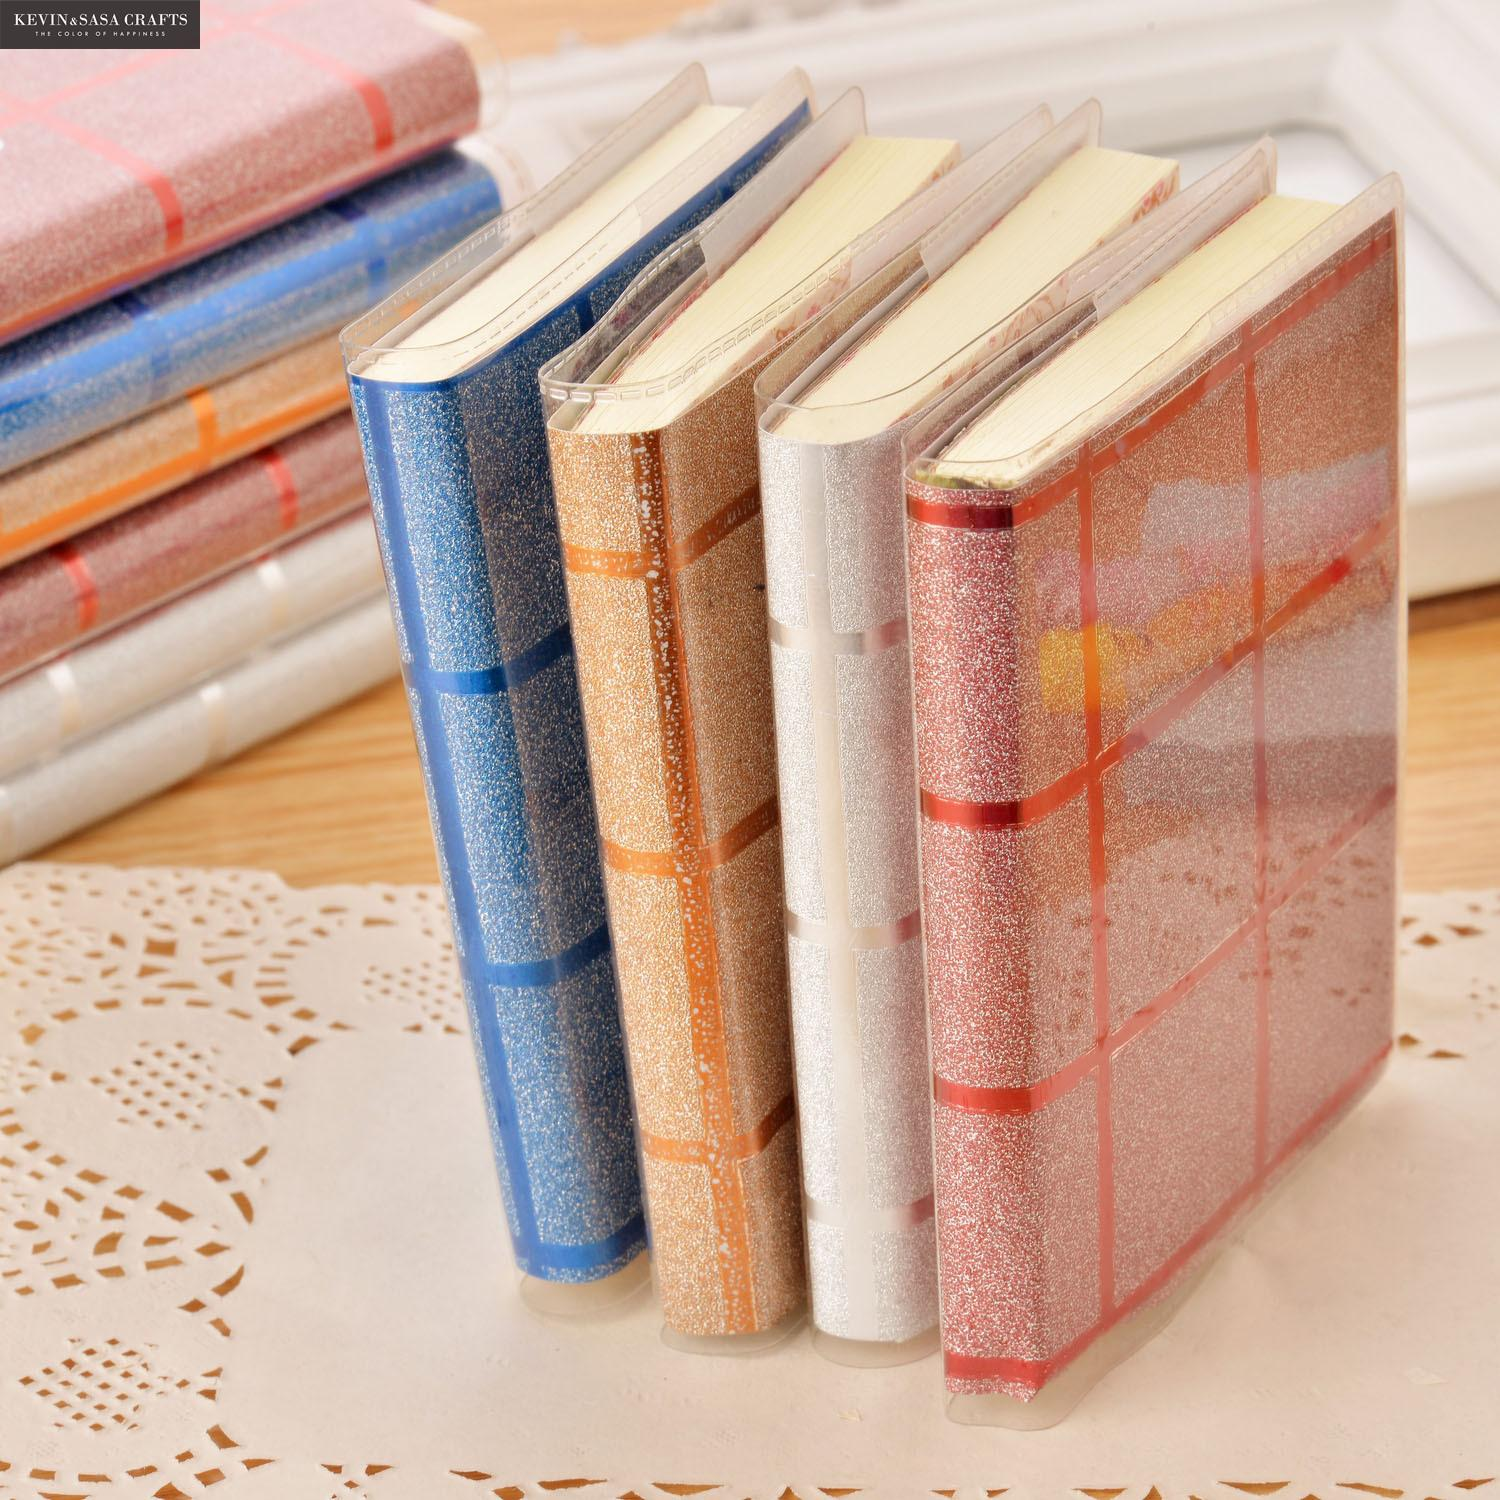 Hc Core also Exercise Book Paper Texture in addition Pavement Swinger Sizes additionally Glitter Notebook Luxury Blank Inner Sheets Planner Sketchbook Diary Note Book Kawaii Journal Stationery School moreover Original. on blank note sheets